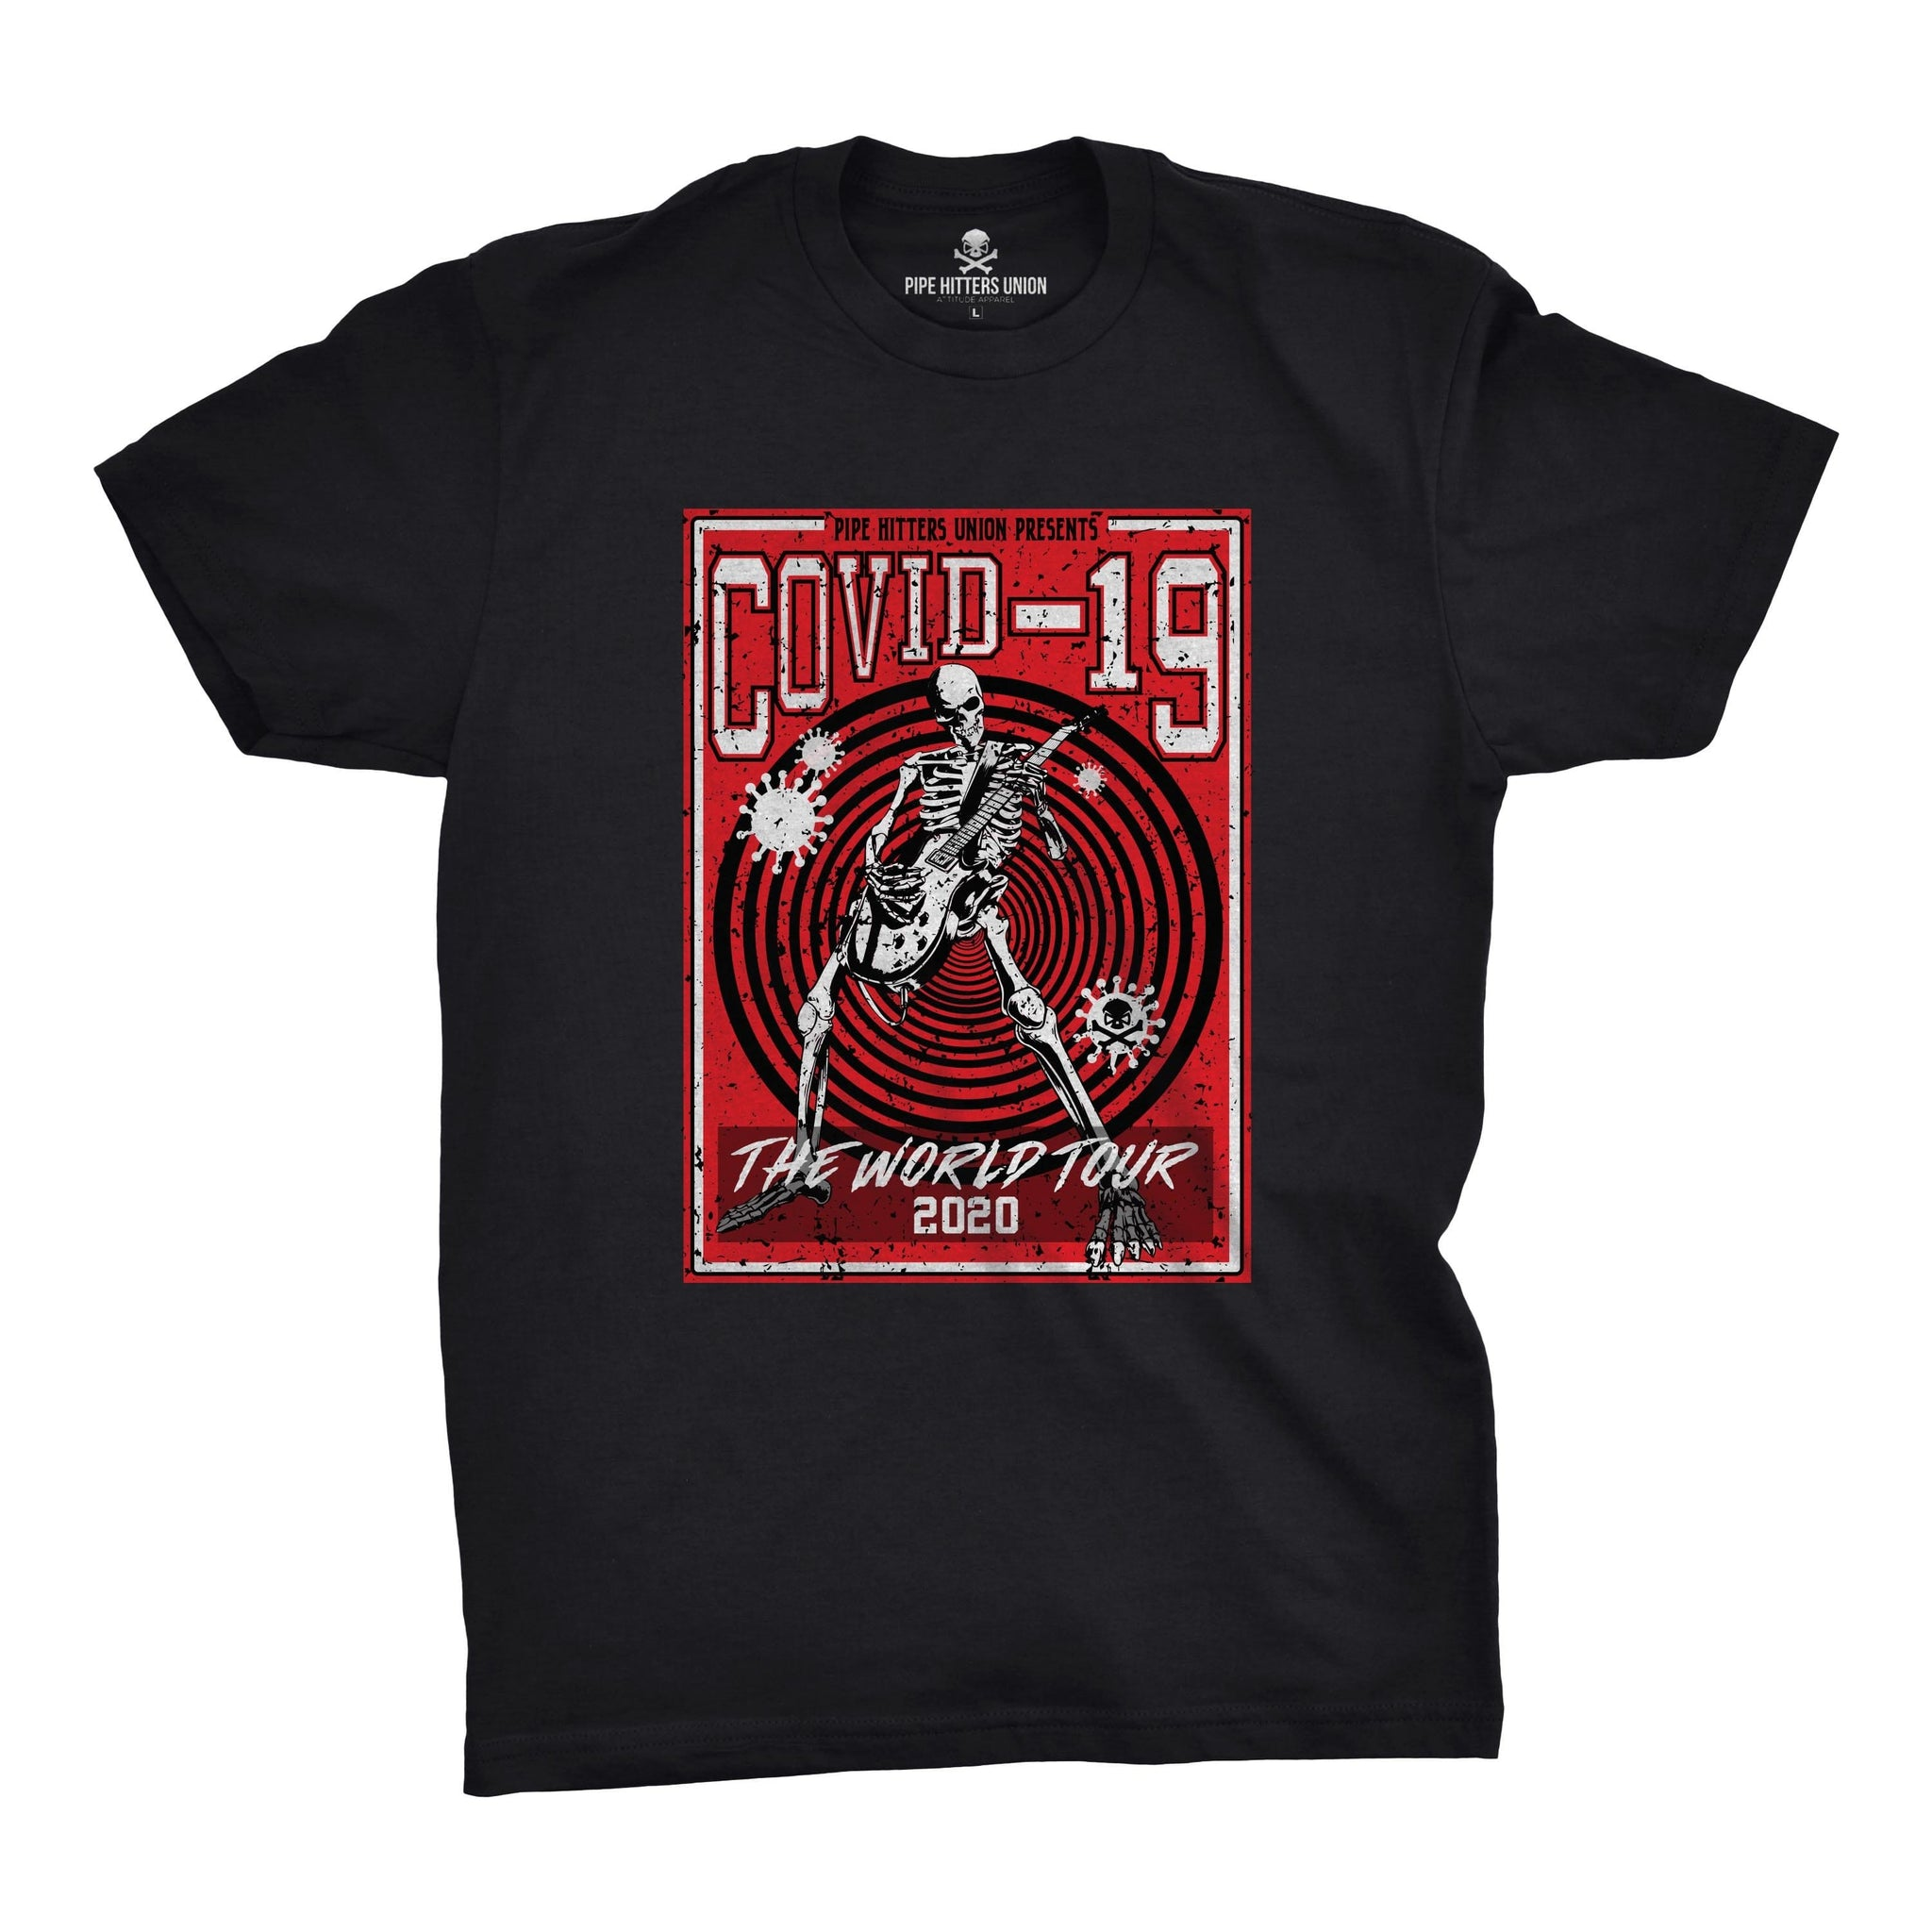 Covid-19 World Tour - Black/Red - T-Shirts - Pipe Hitters Union